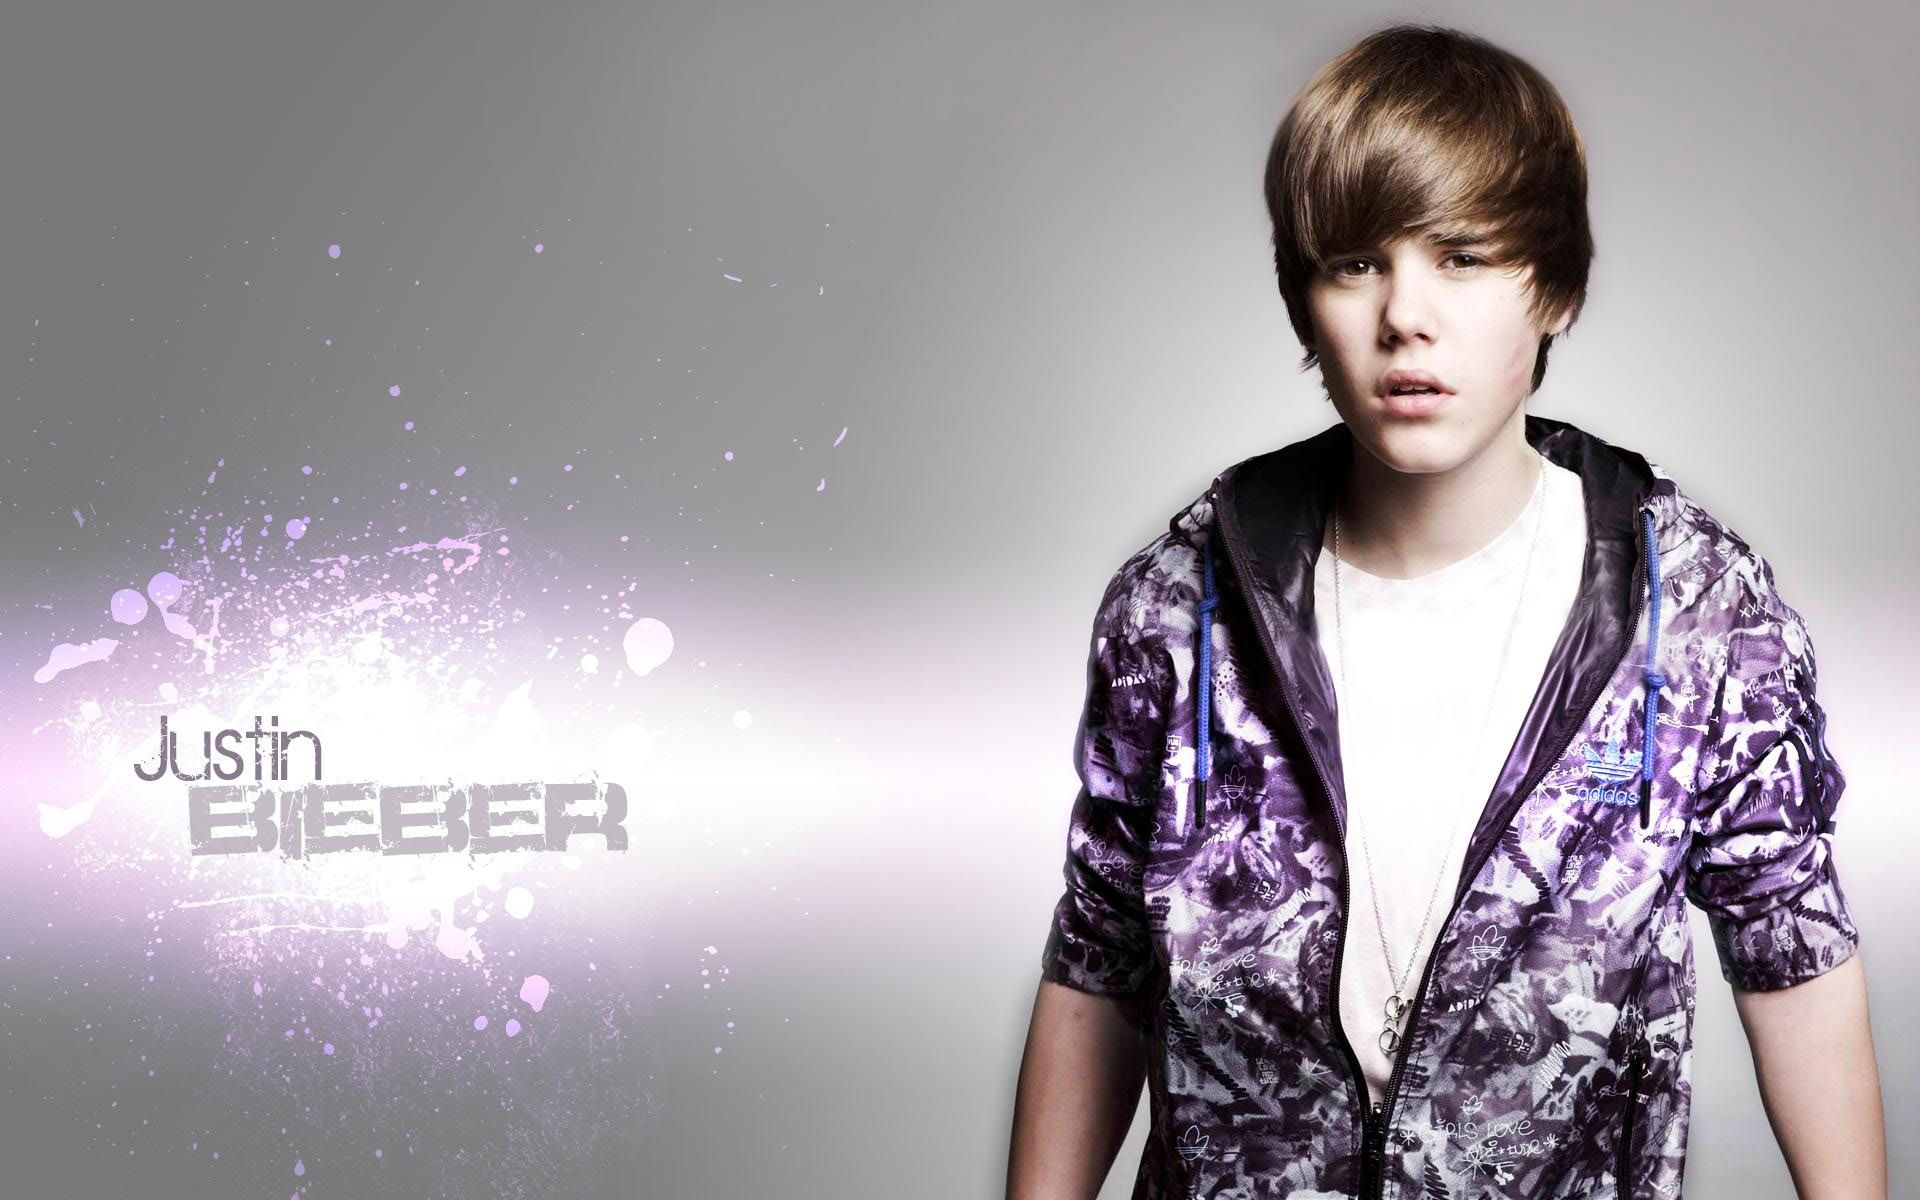 Hd wallpaper justin bieber - Free Download Pure 100 Justin Bieber Hd Wallpapers Latest Photoshoots Hot Images And